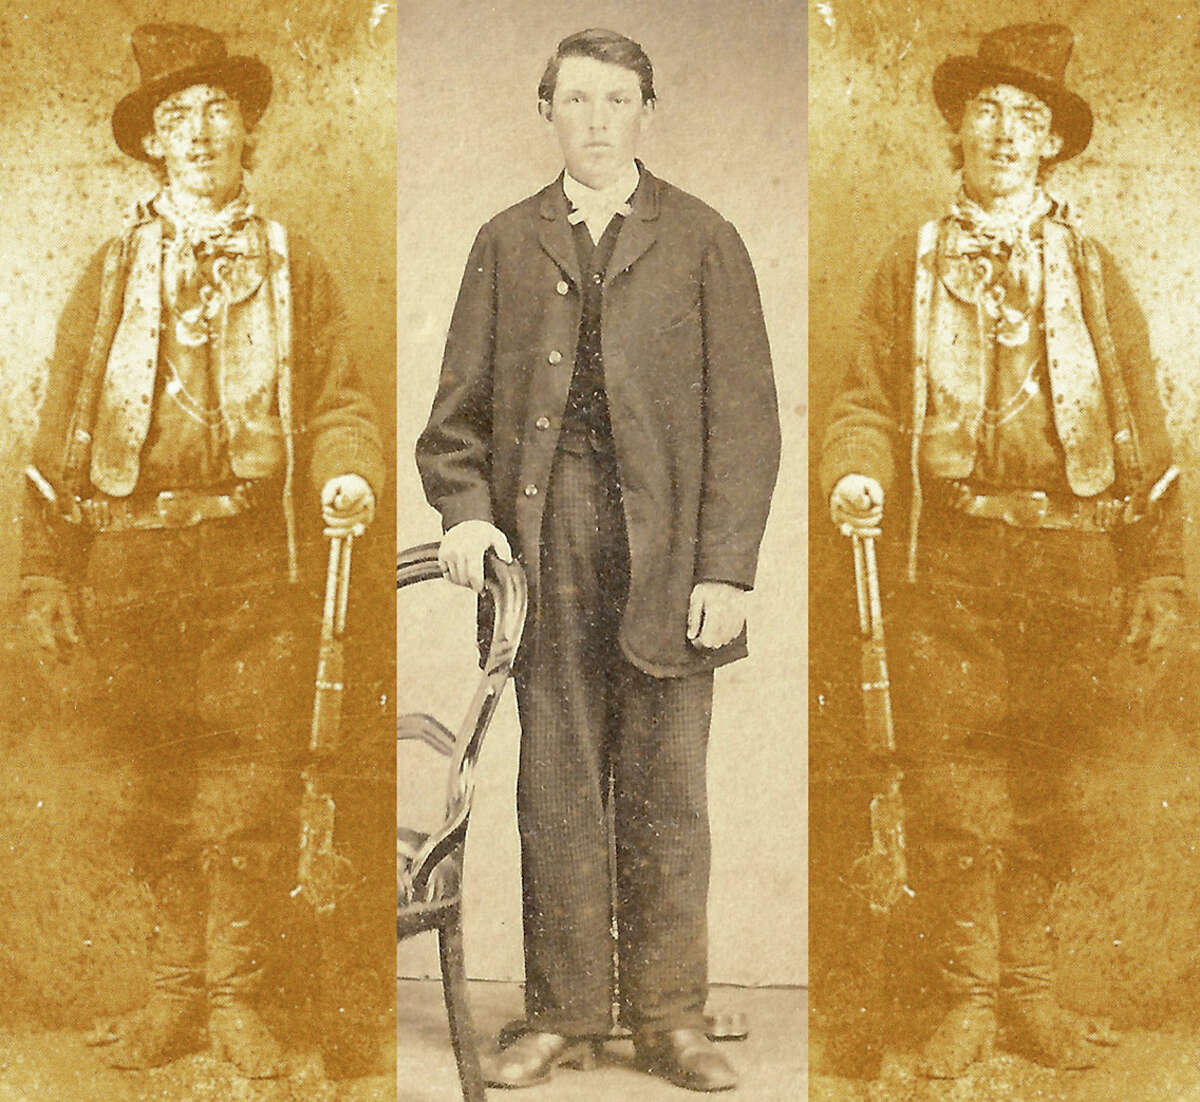 Is this Billy the Kid? On the left and right are mirror images of a rare Tintype image of famed Western outlaw William